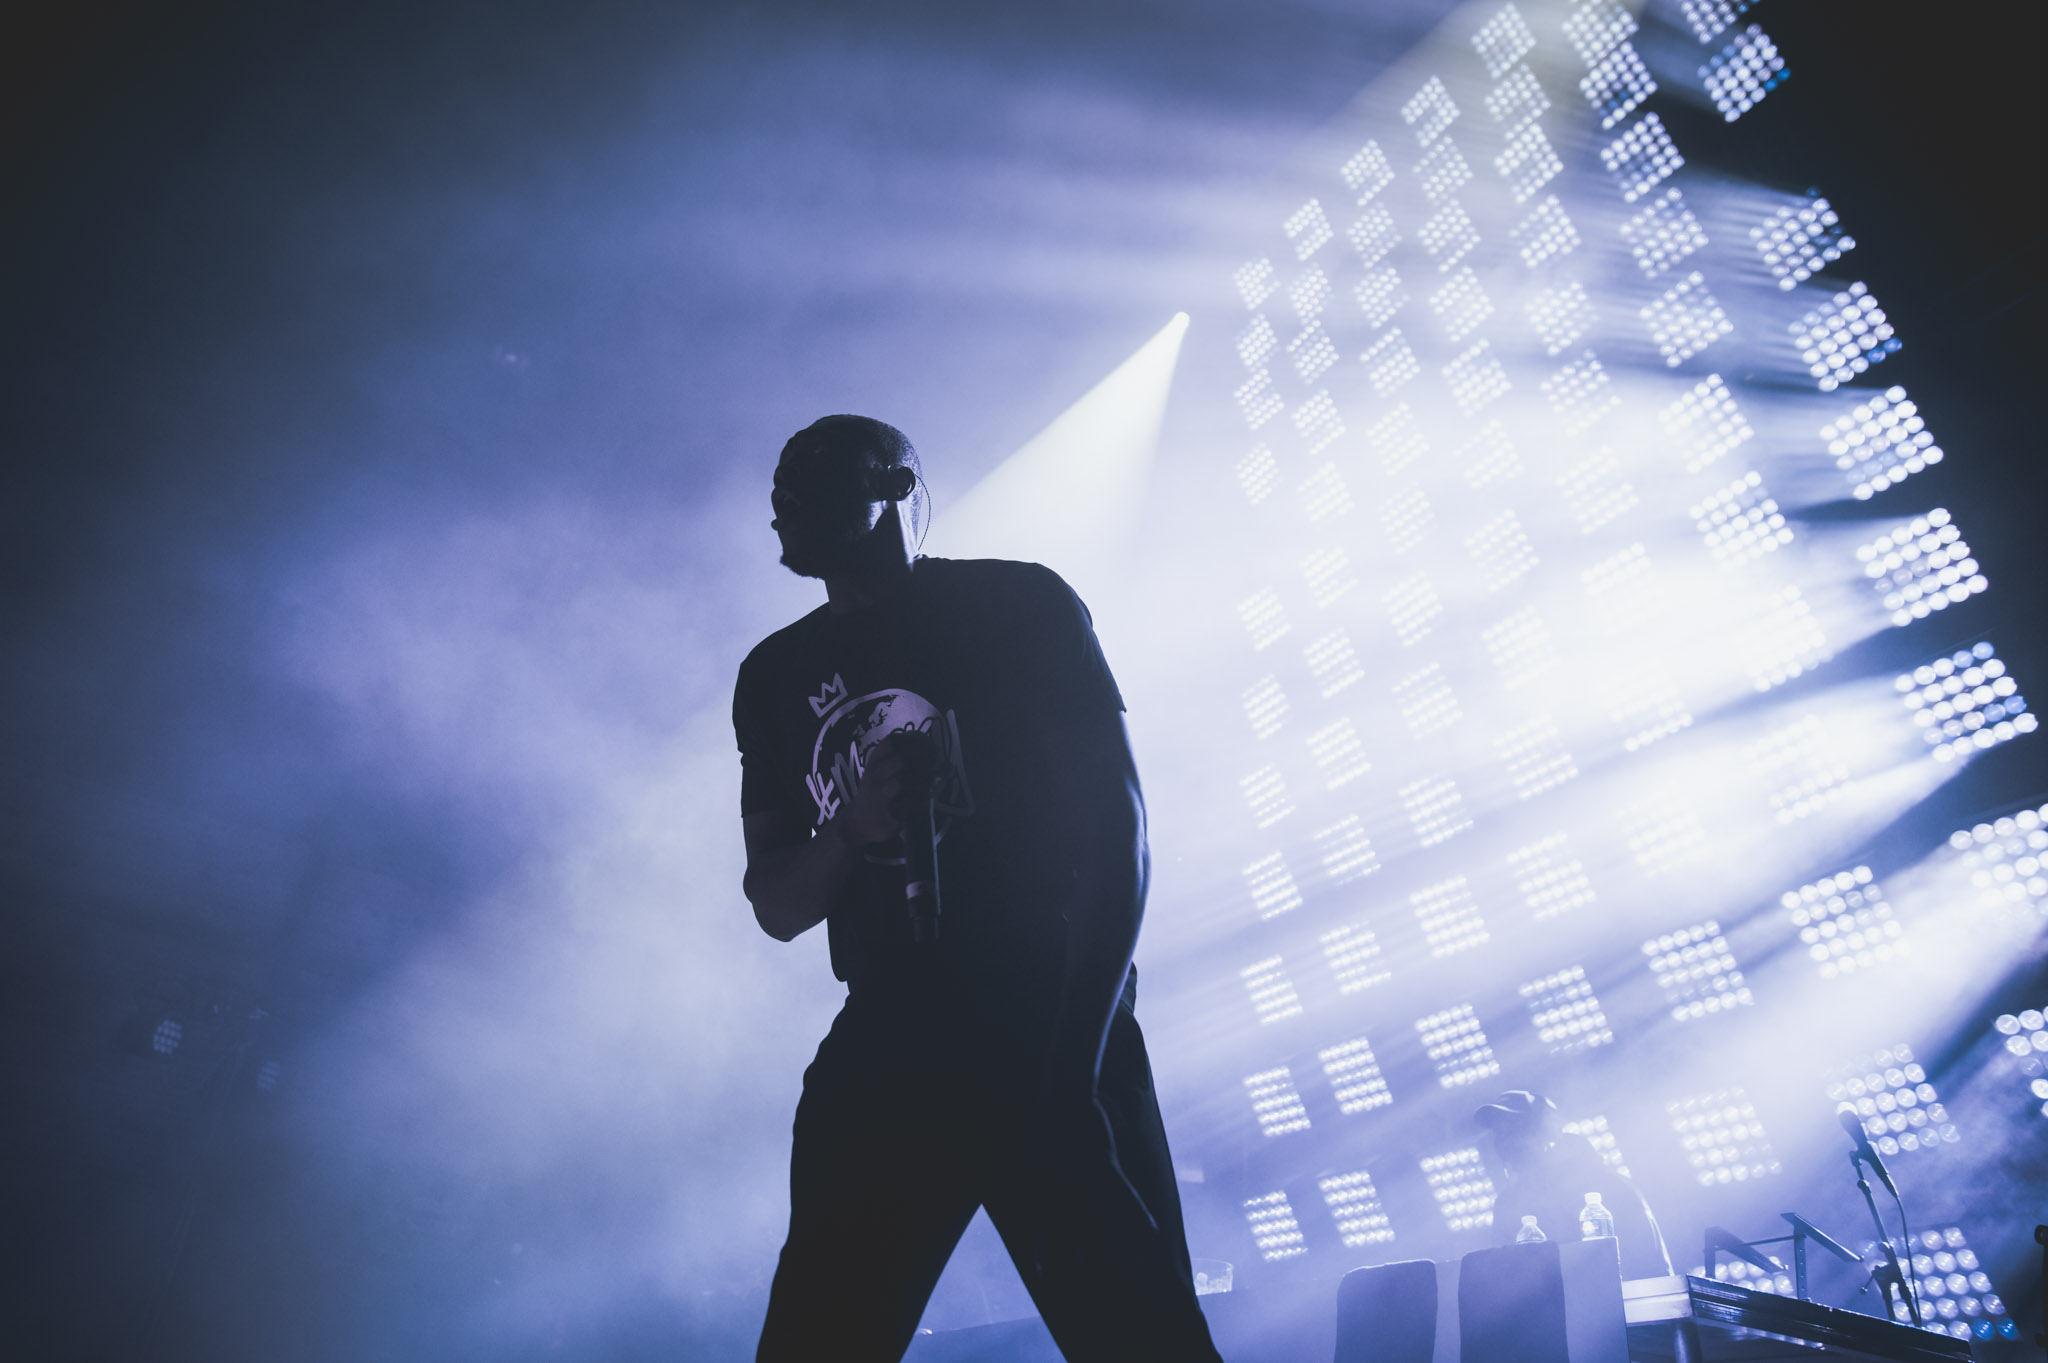 NUITS SONORES 2017 - REPORTAGE LIVE